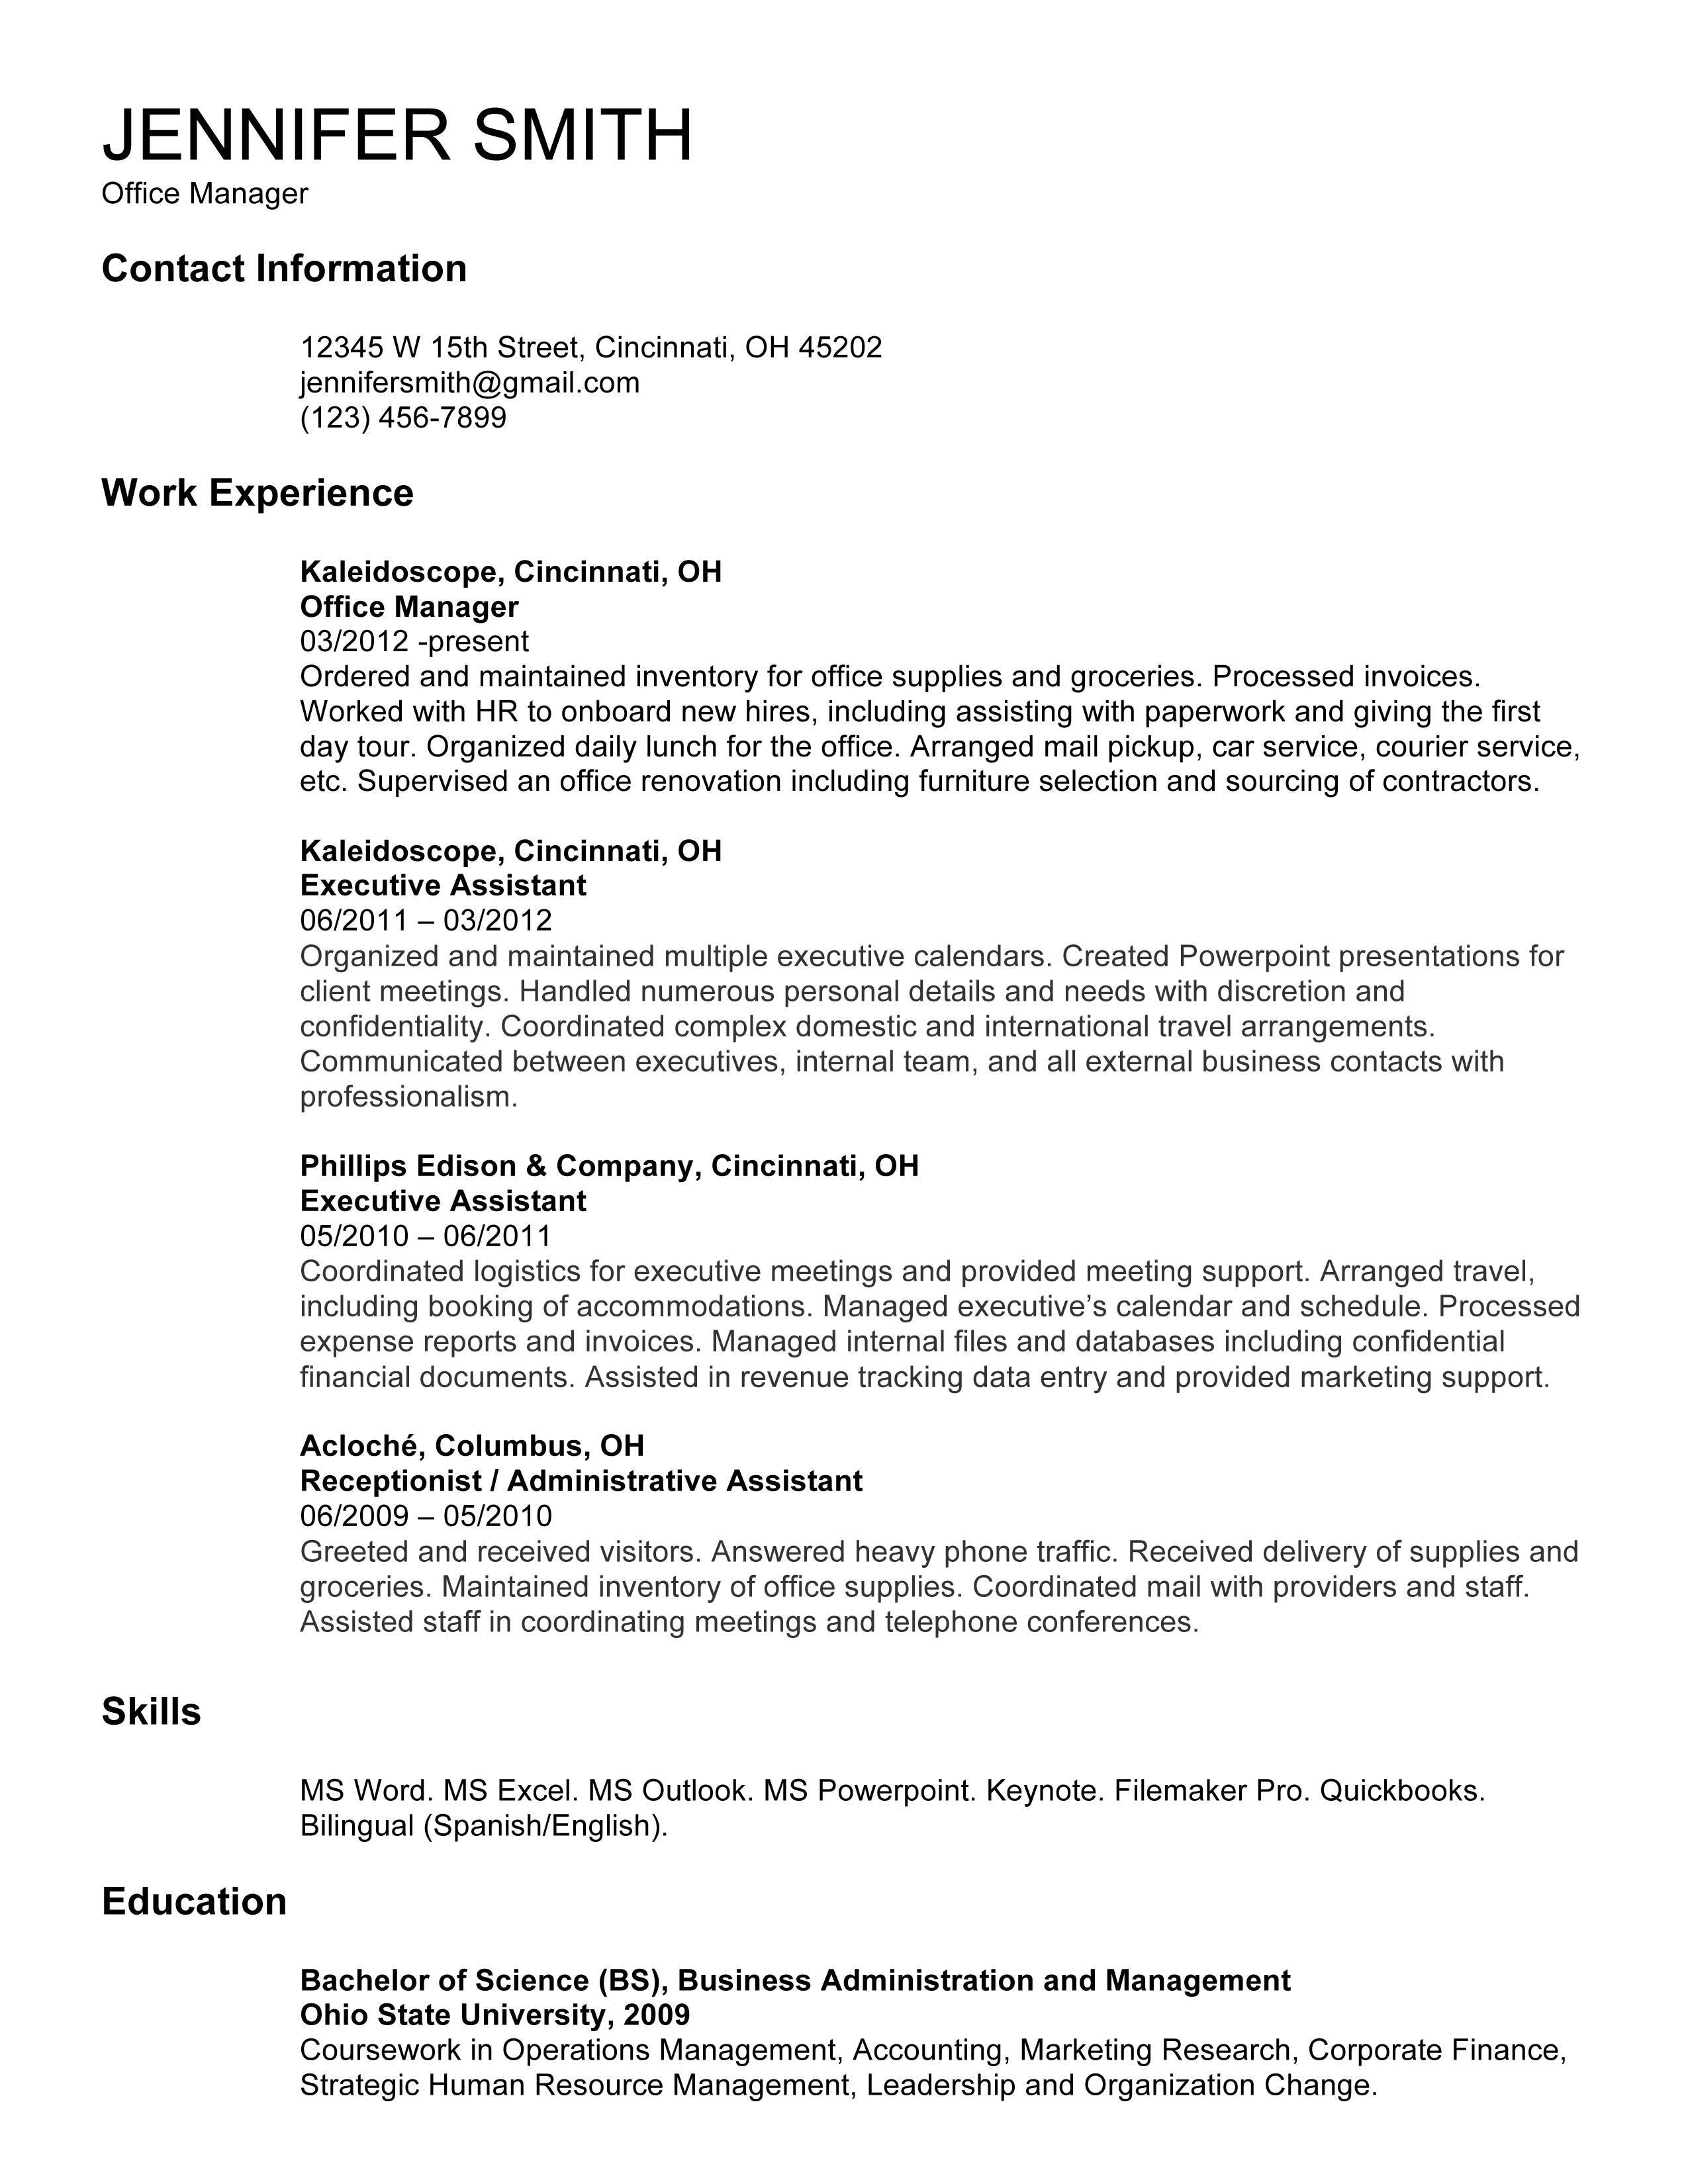 ACT Career Map - 68W - Health Care Specialist